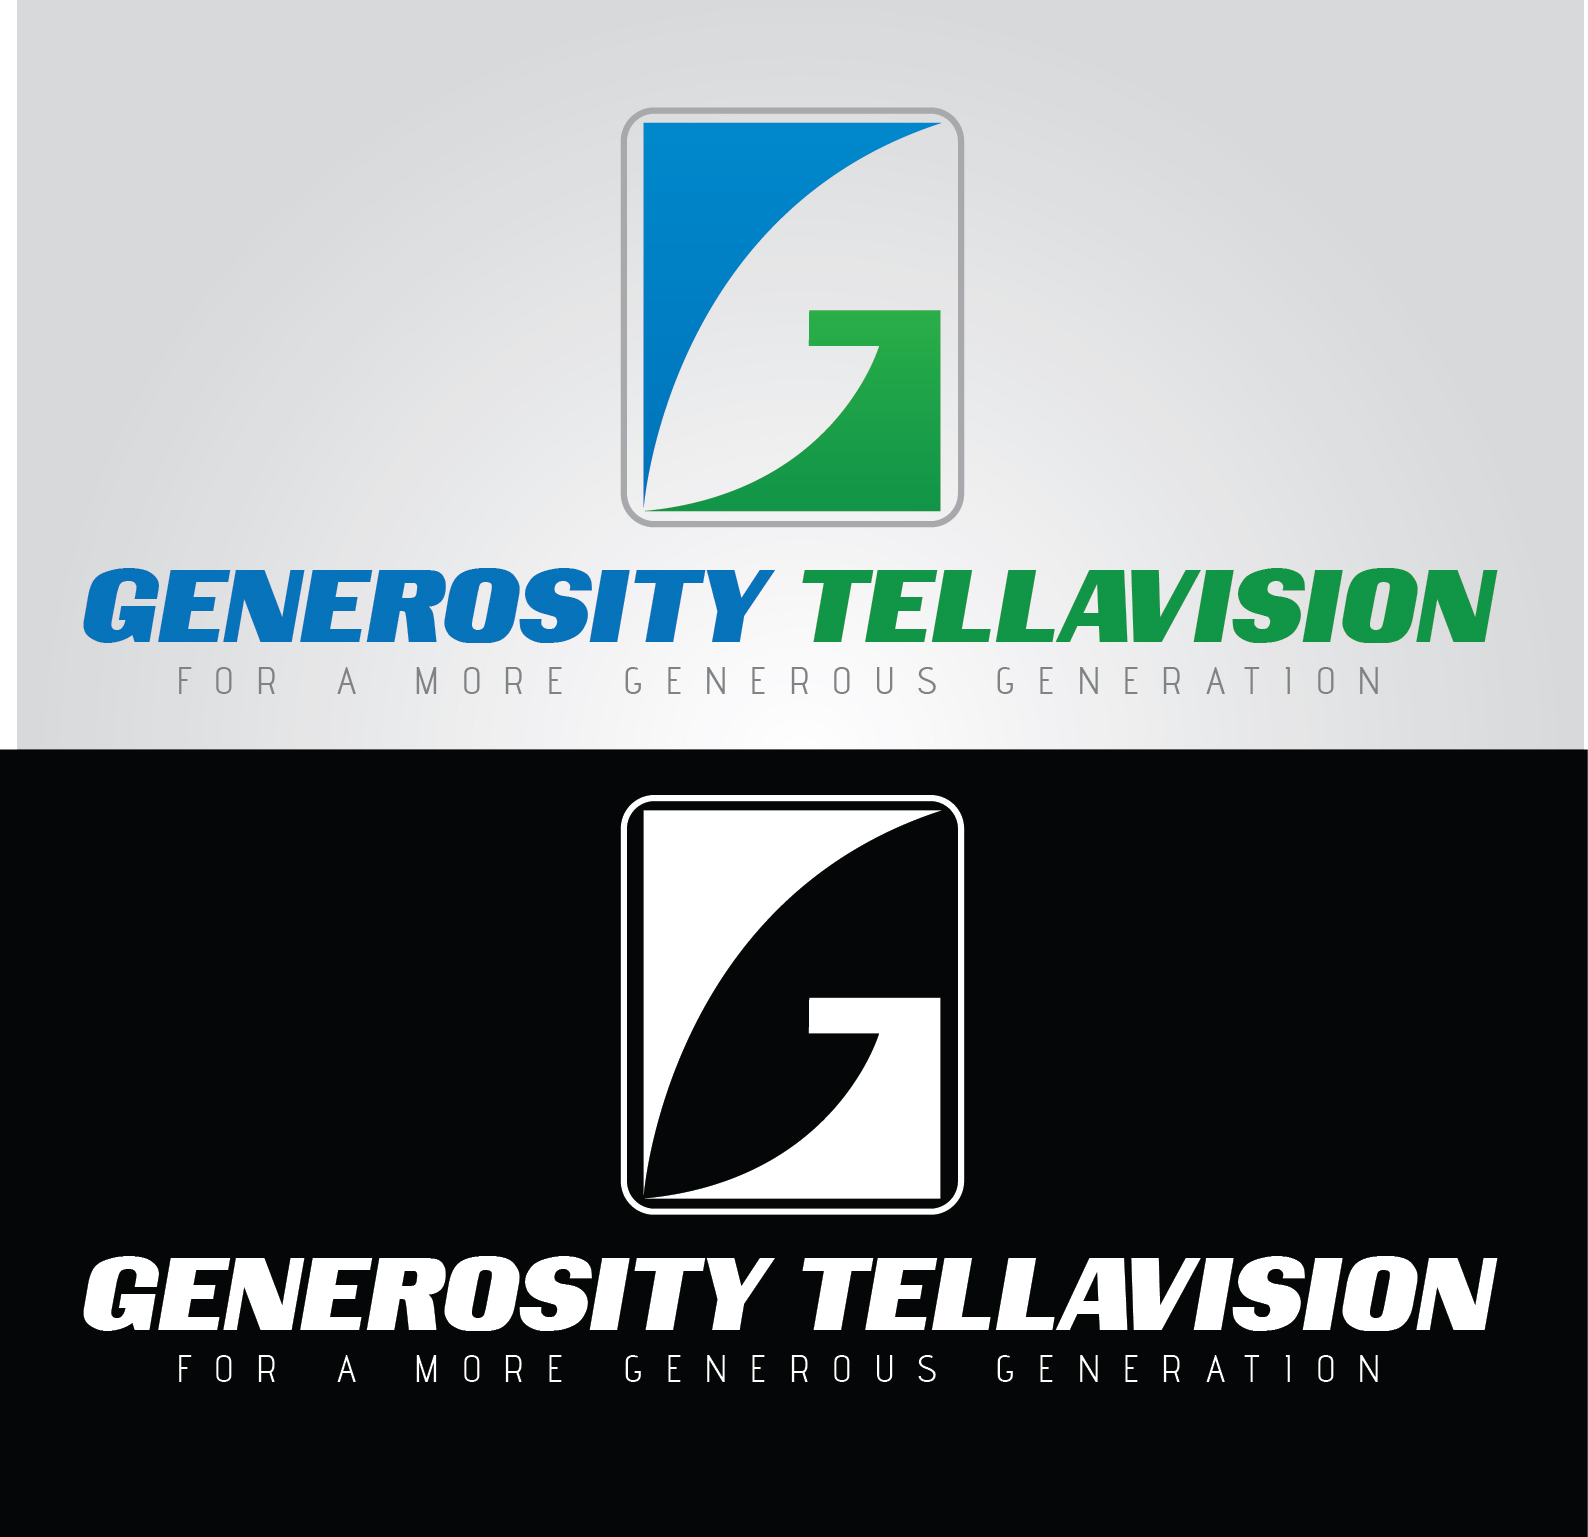 Logo Design by mediaproductionart - Entry No. 43 in the Logo Design Contest Artistic Logo Design for Generosity TellAVision.